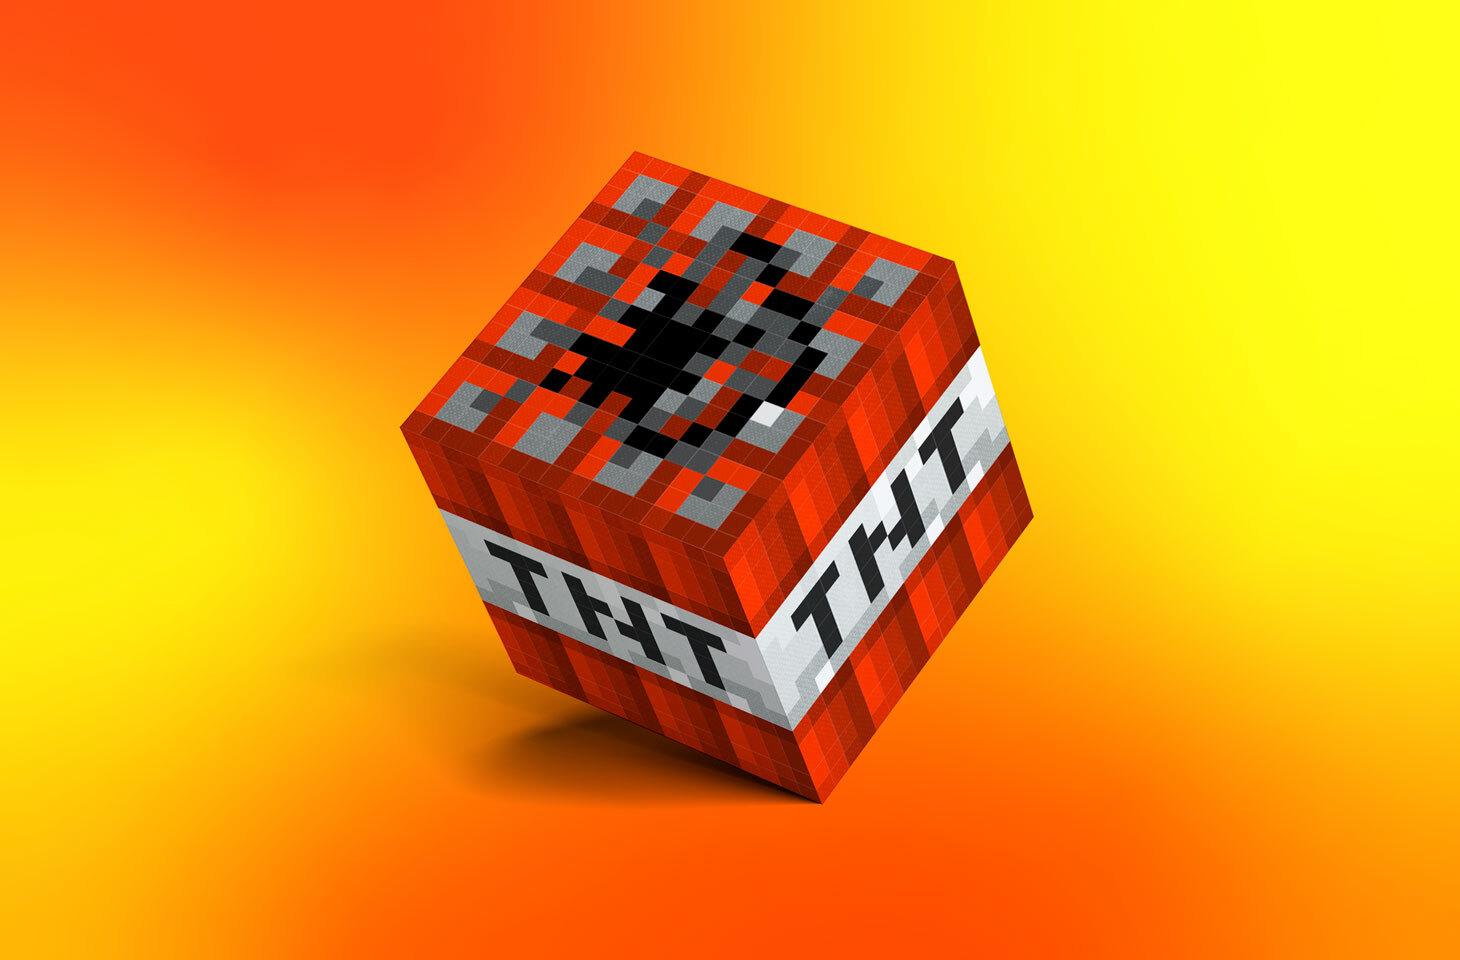 We found more malicious apps in Google Play disguised as Minecraft mods, social media ad-management apps, and a file recovery utility.